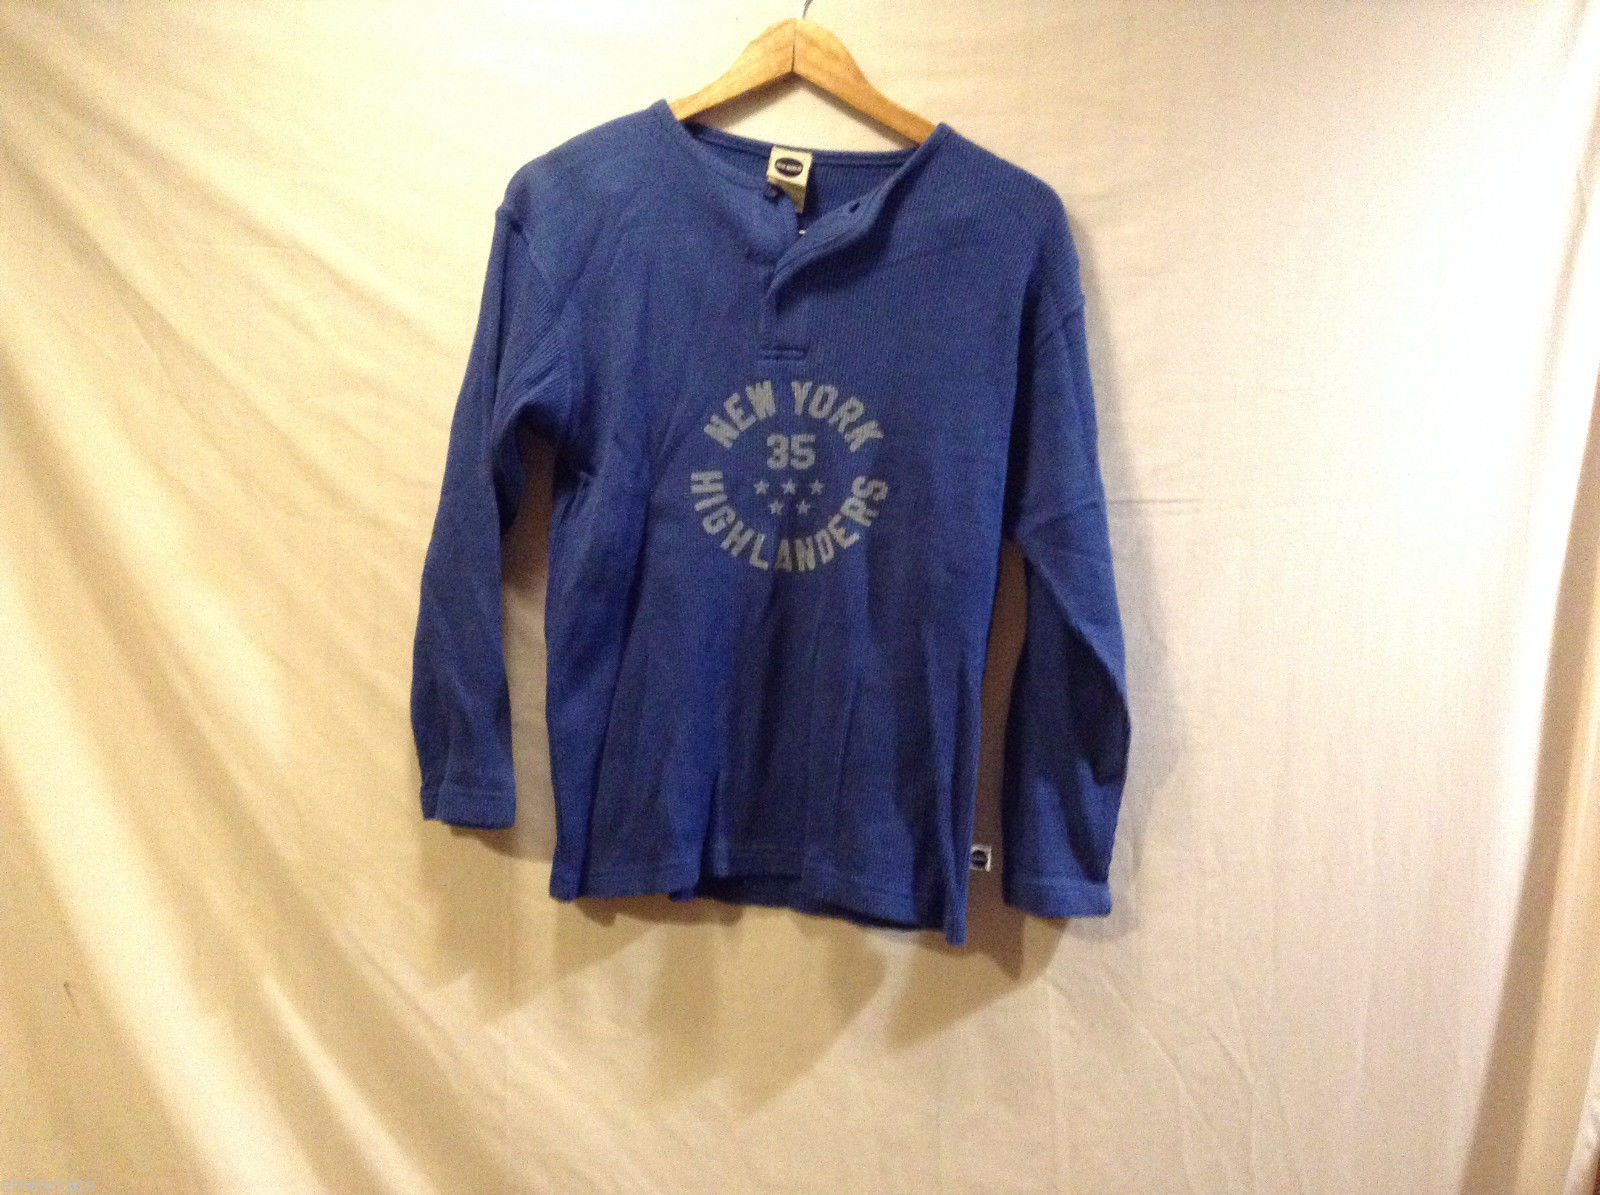 Blue Marlin Boys long sleeve thermal 100% Cotton blue T-Shirt, Size M (10-12)